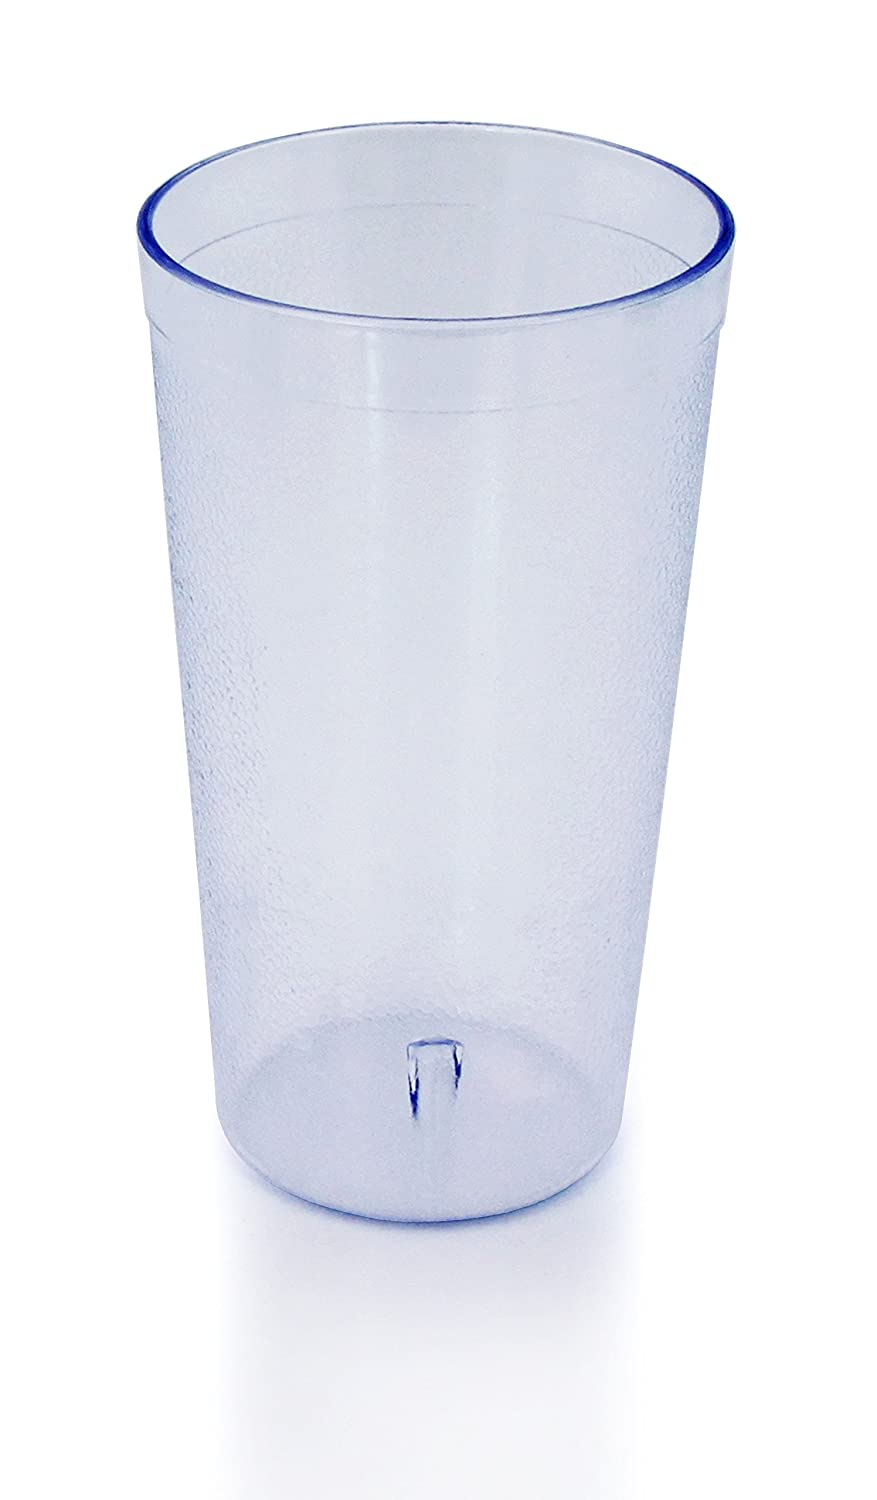 New Star Foodservice 46304 Tumbler Beverage Cups, Restaurant Quality, Plastic, 12 oz, Clear, Set of 12